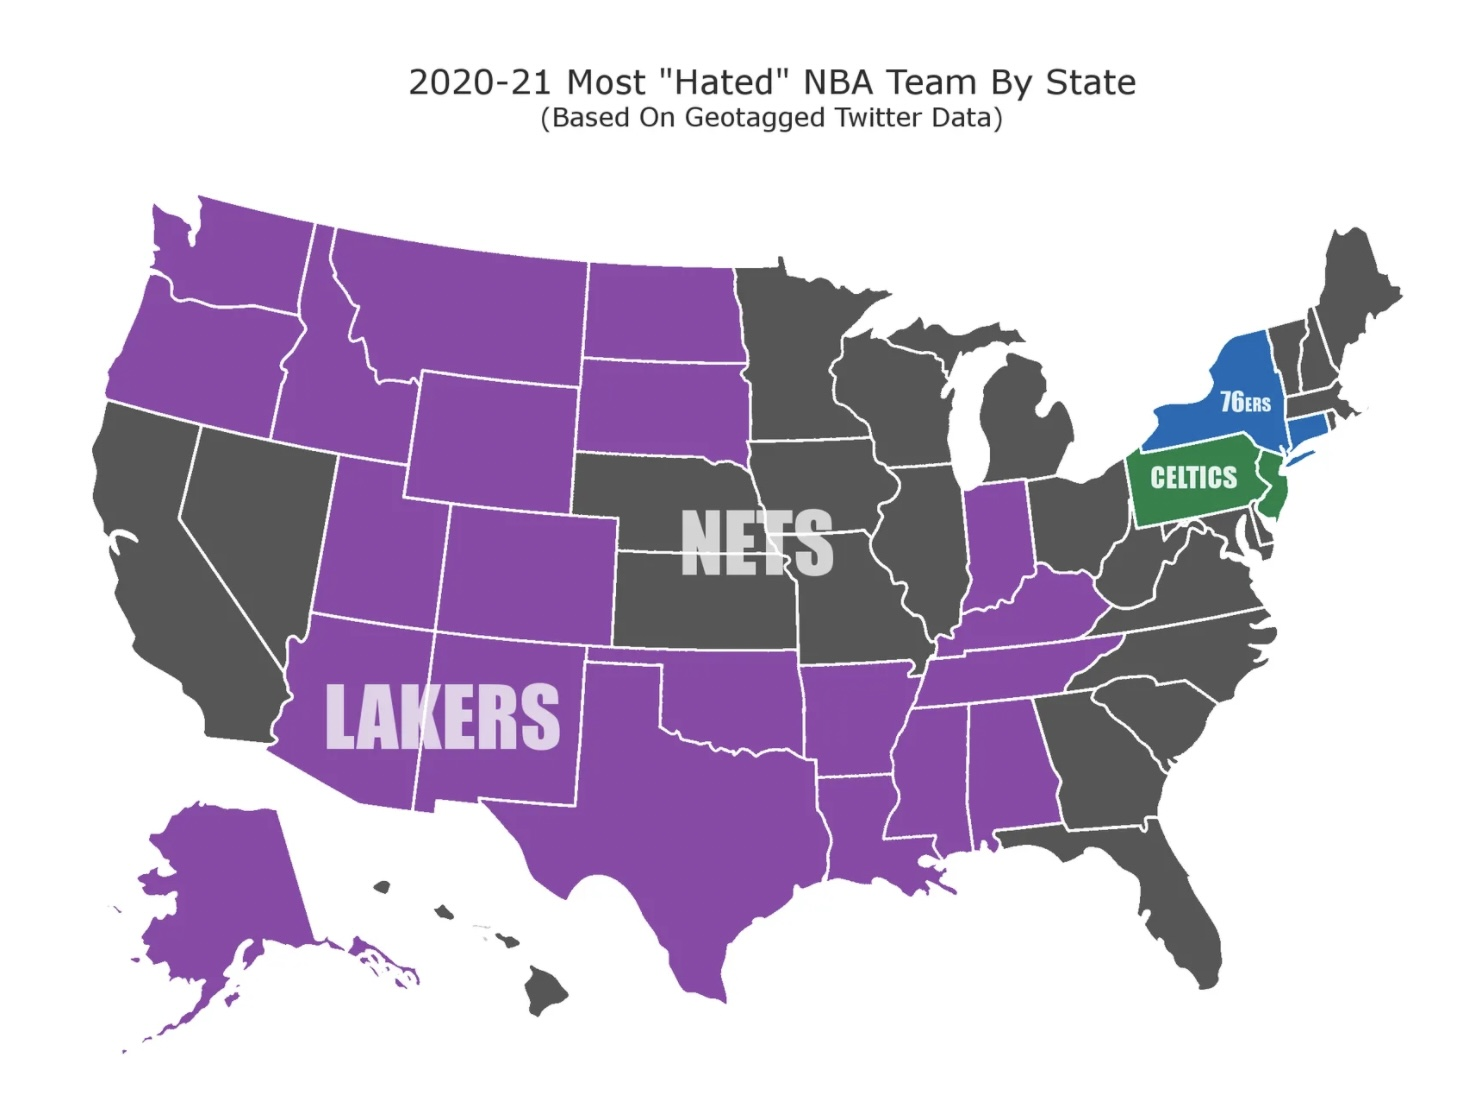 Lakers and Nets Most Hated